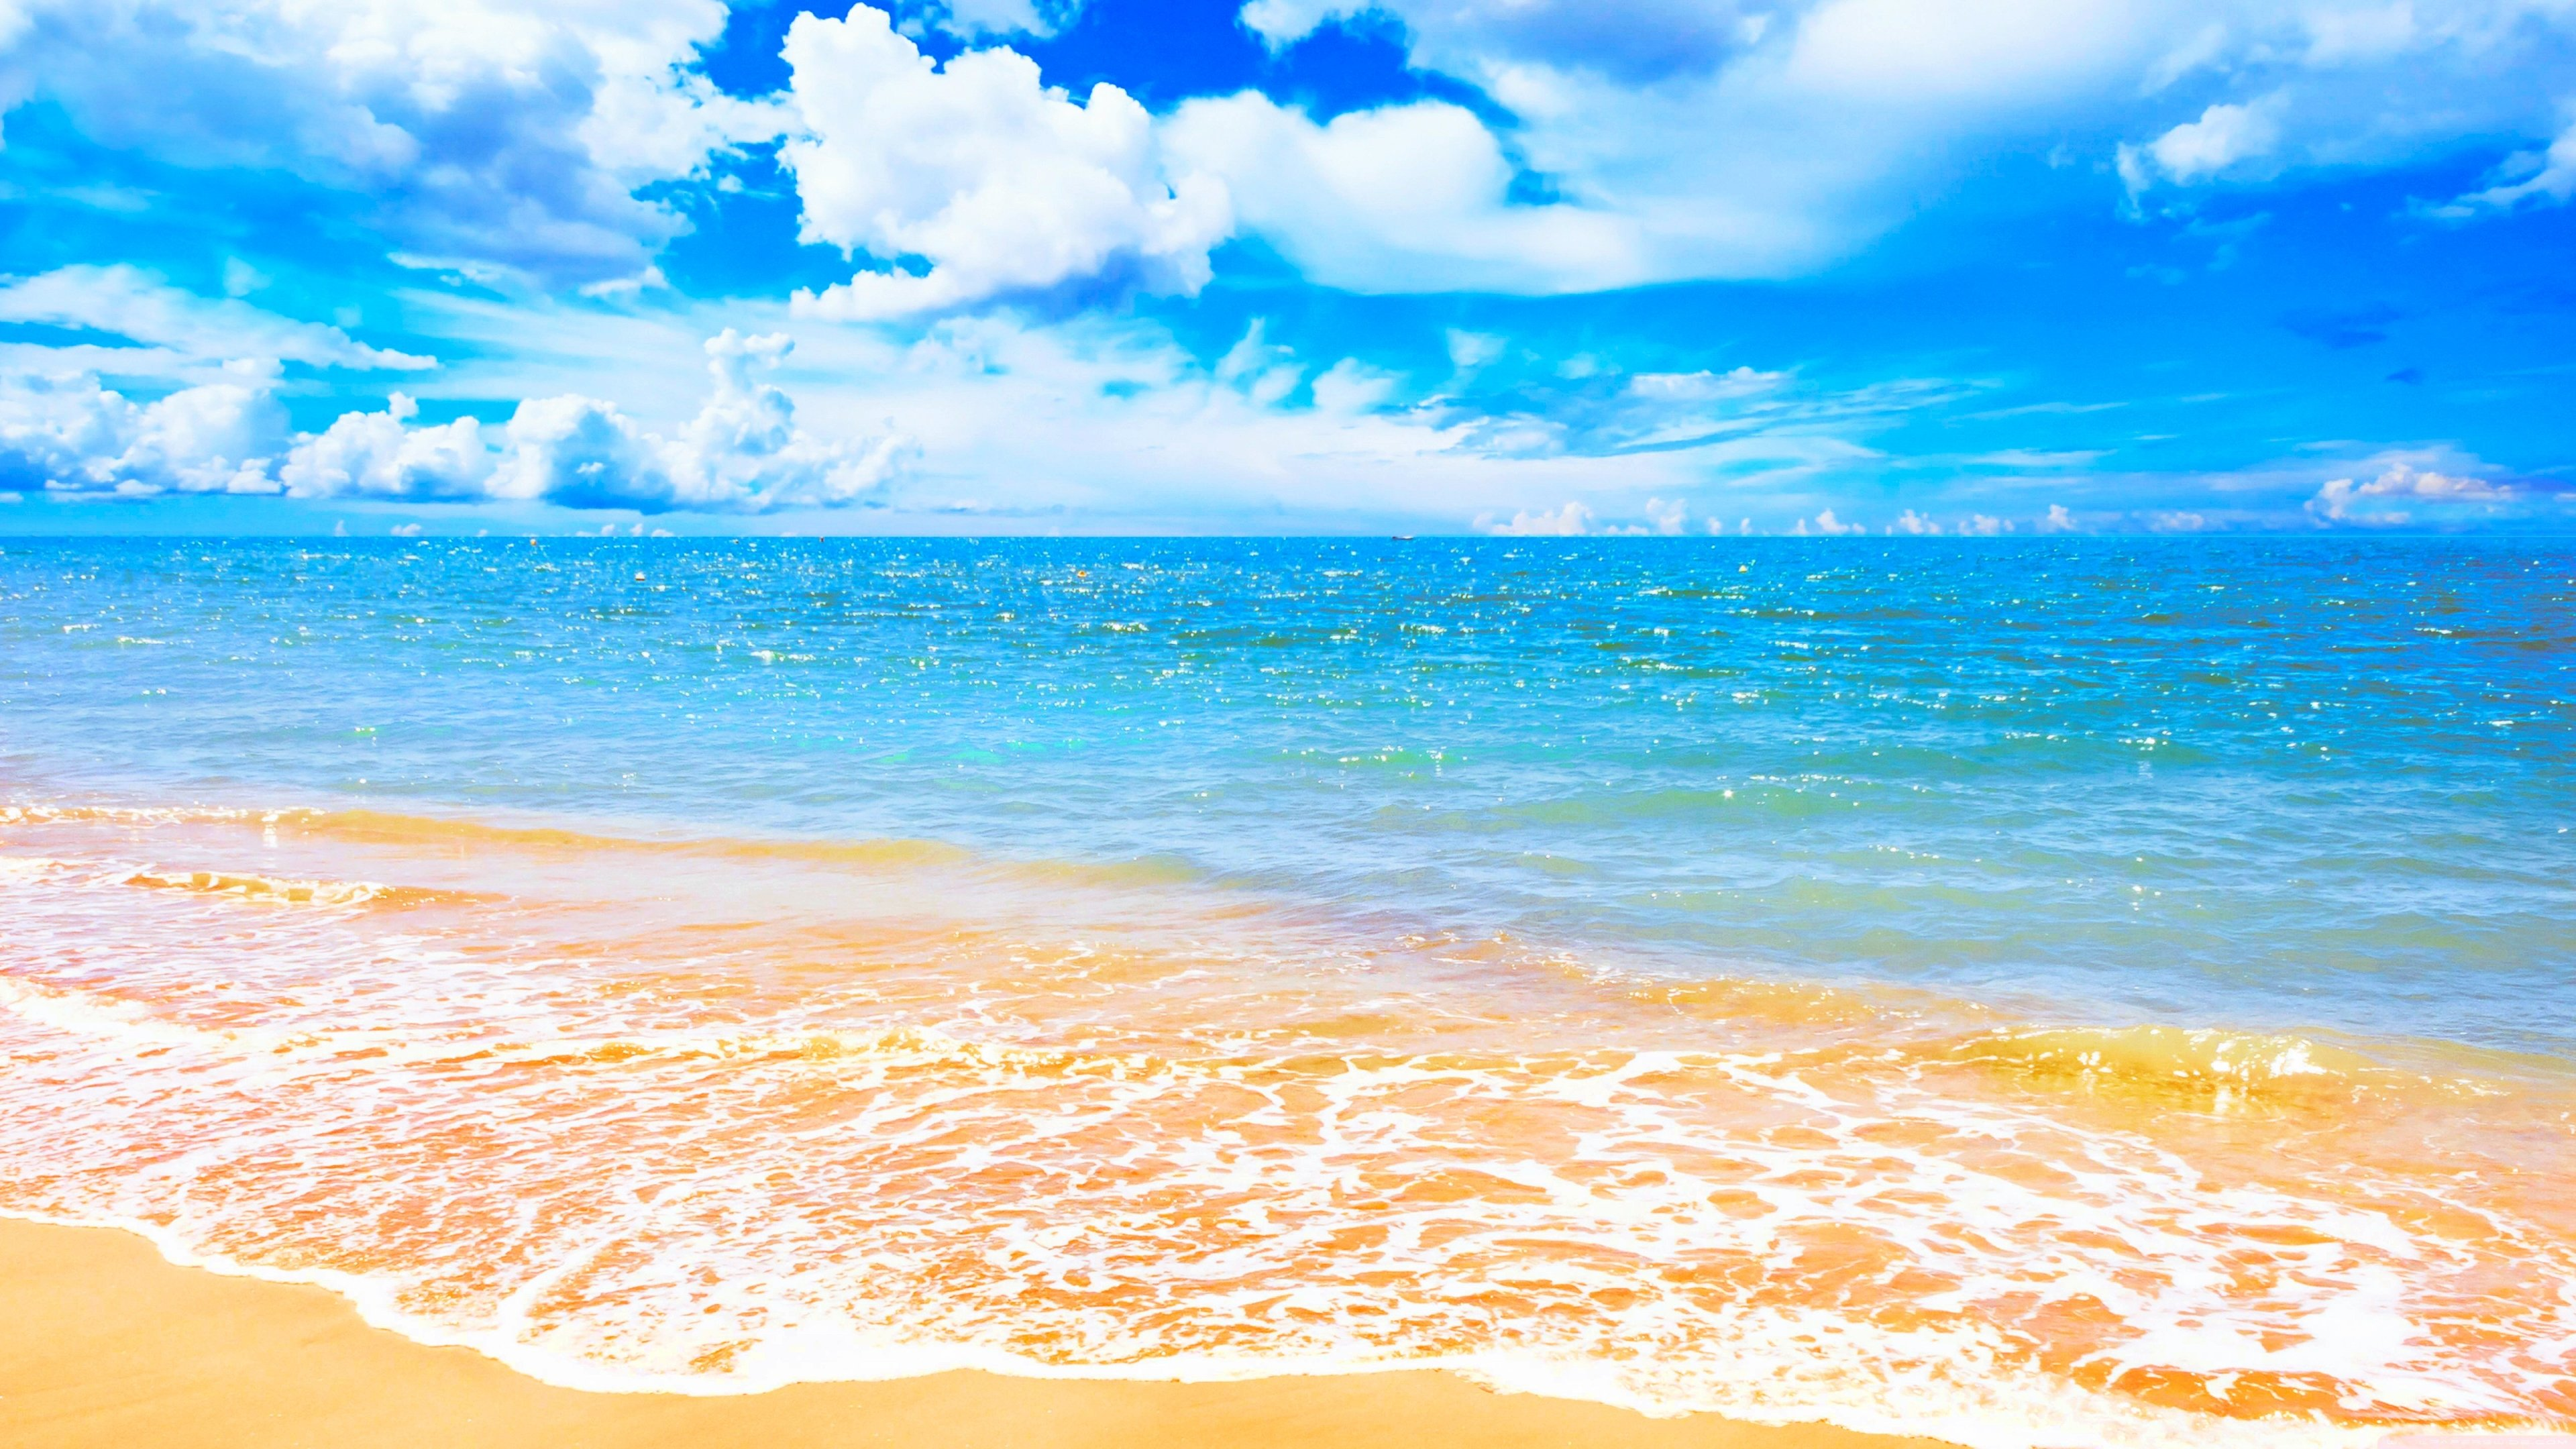 High-Quality Summer Beach Wallpaper 4K Desktop